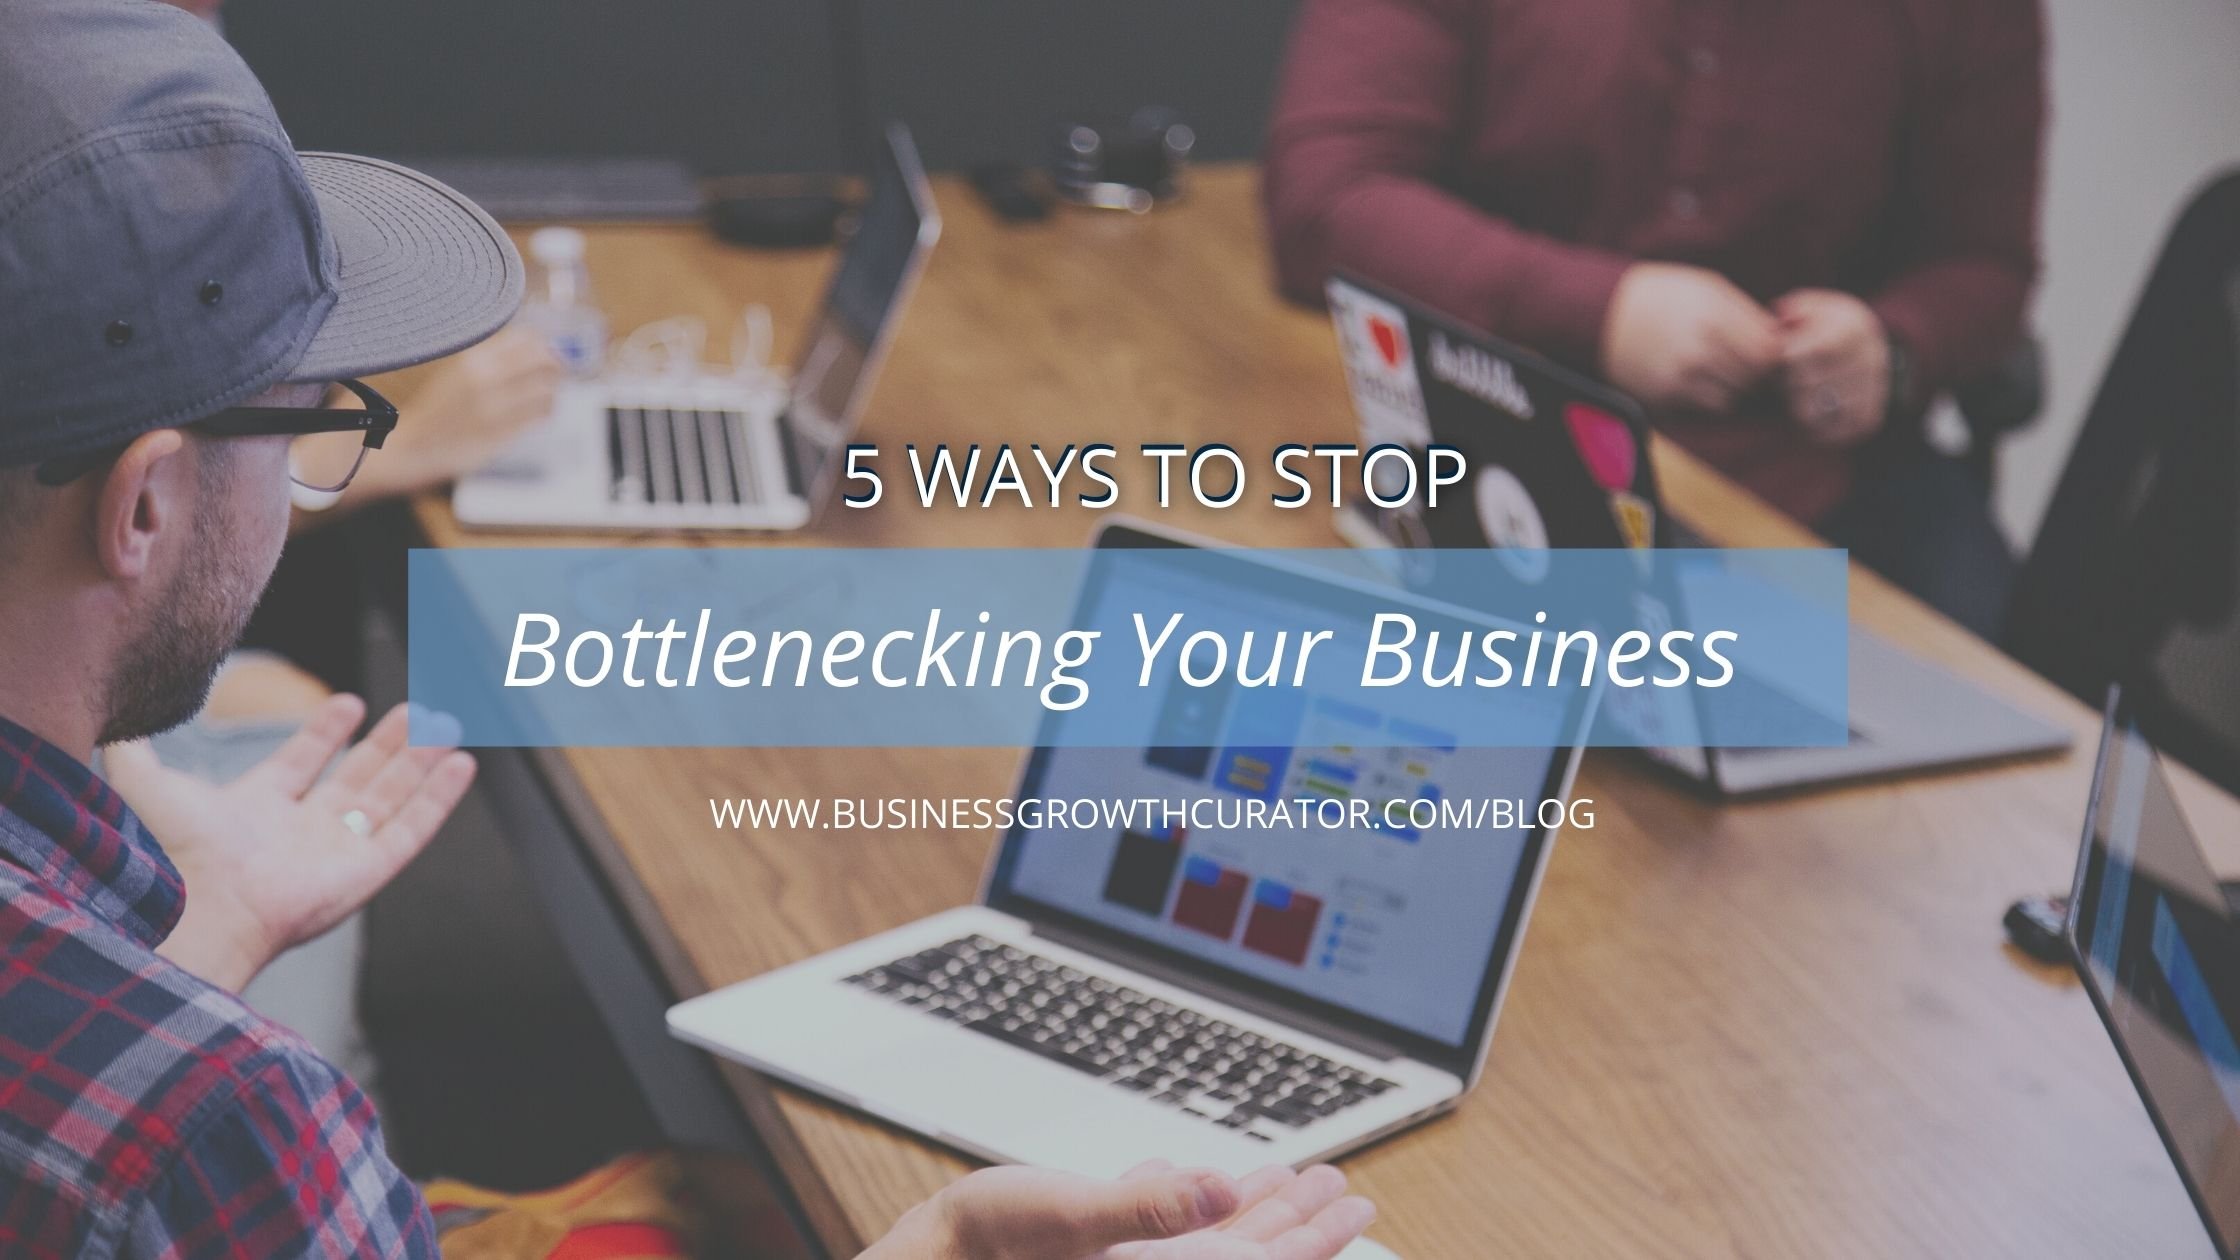 5 ways to stop bottlenecking your business